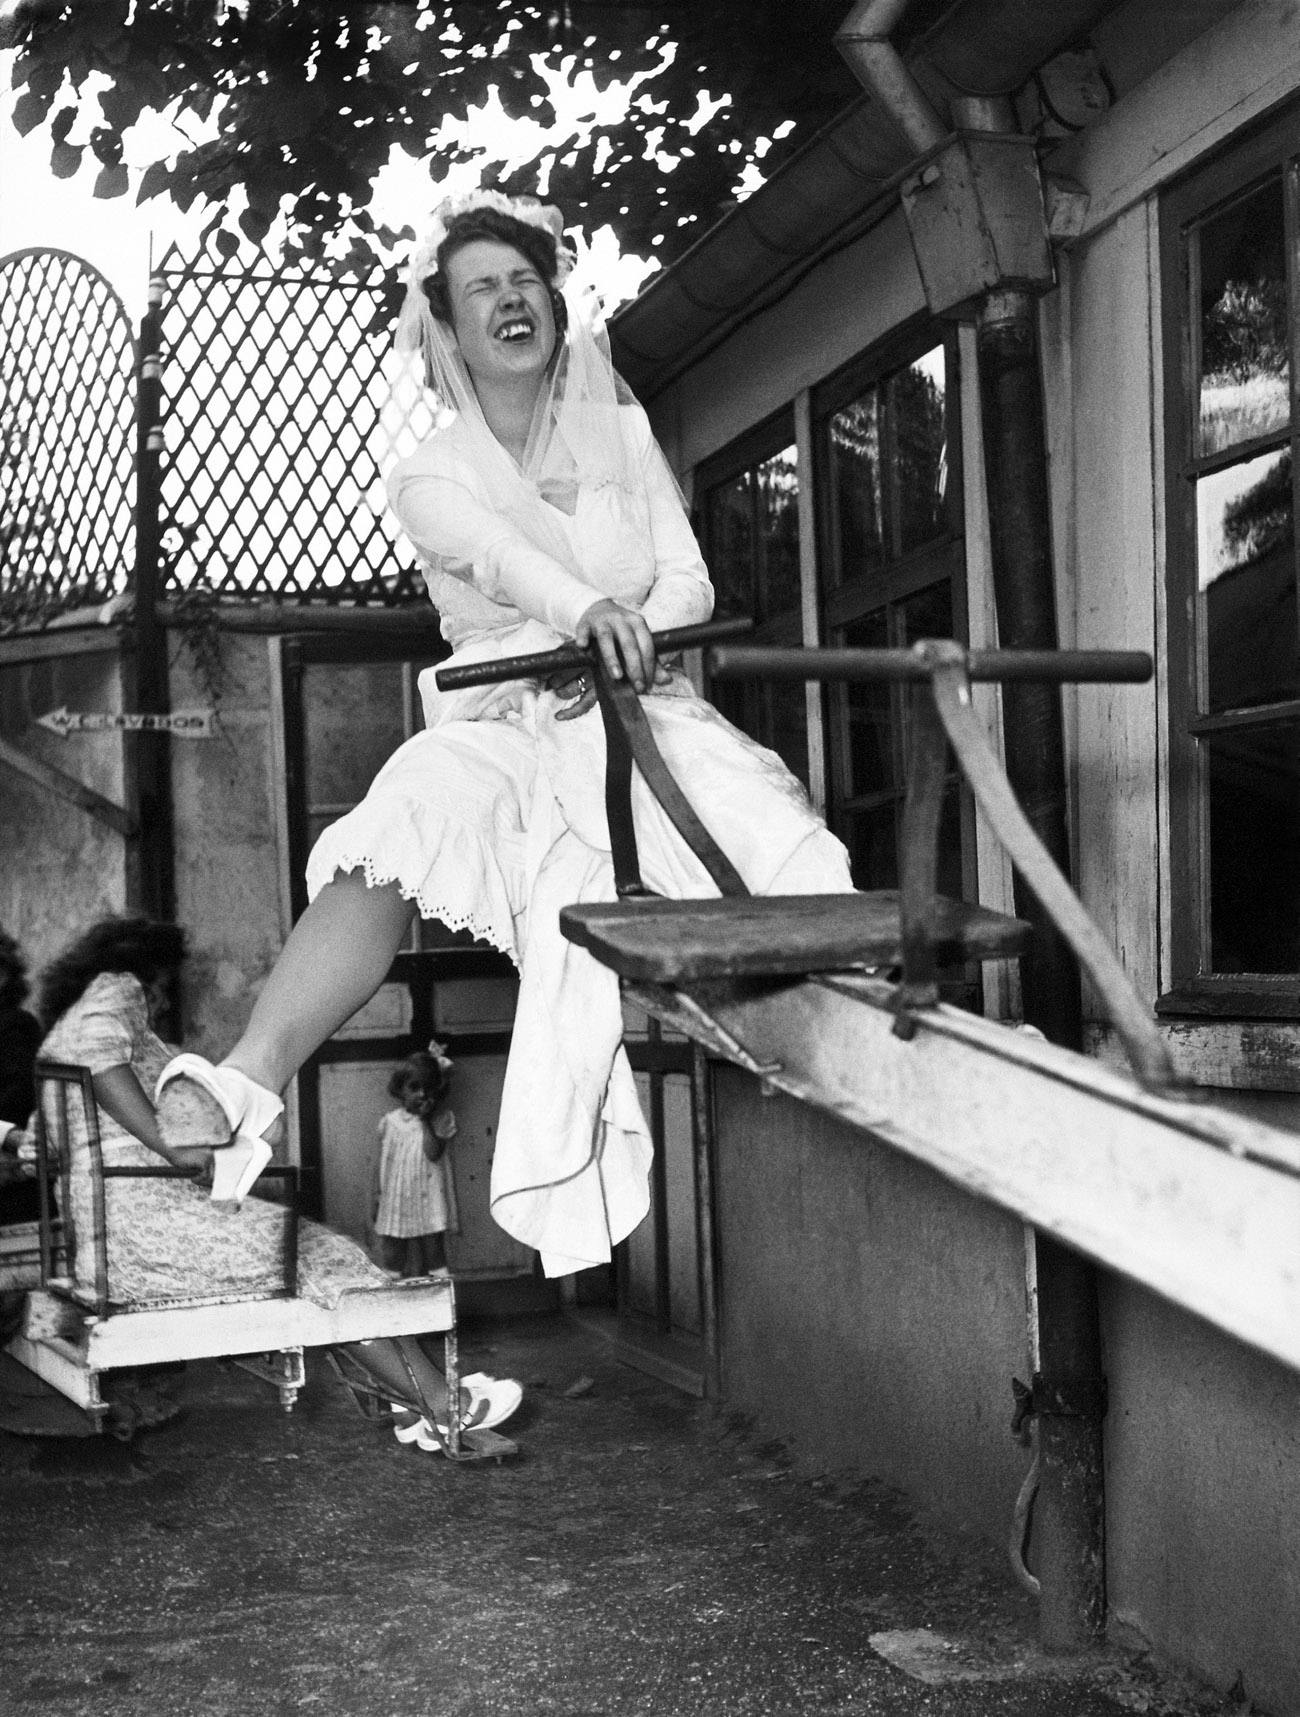 Exhibition Robert Doisneau Photographs From Craft To